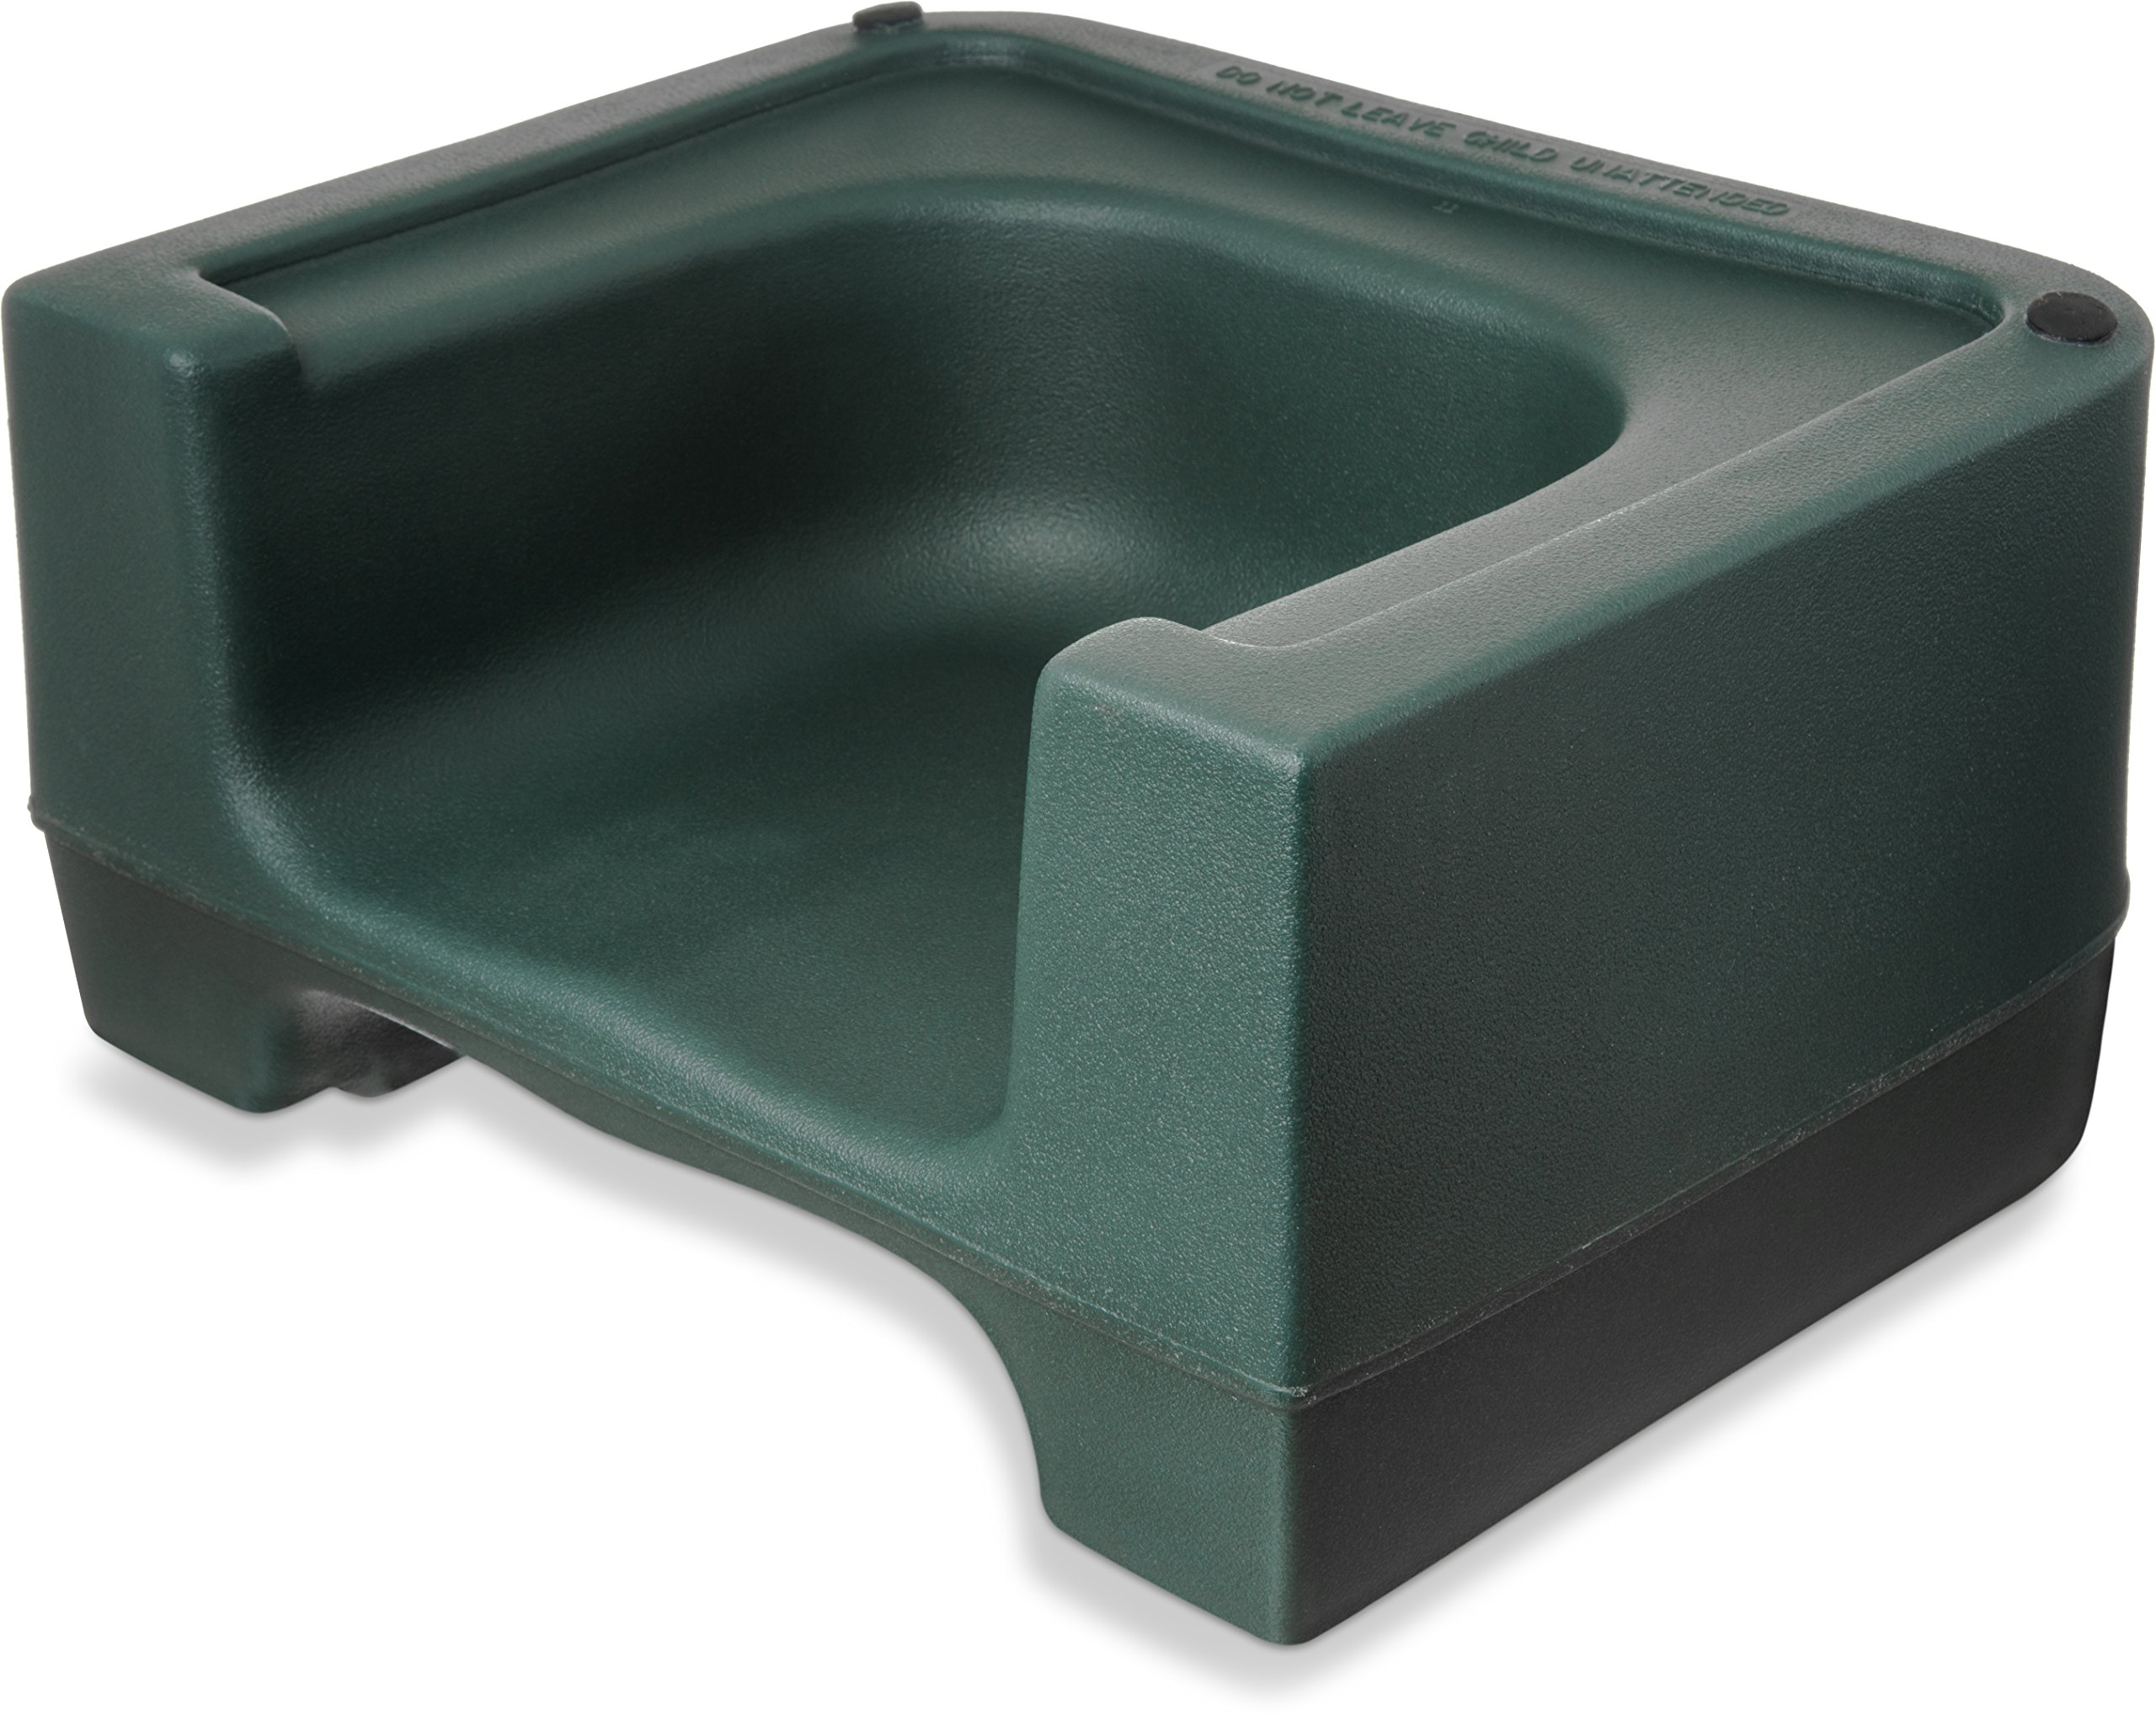 Carlisle 711008 Polyethylene Extra Strong Booster Seat, 8'' x 12.5'' x 15.5'', Forest Green (Case of 4)